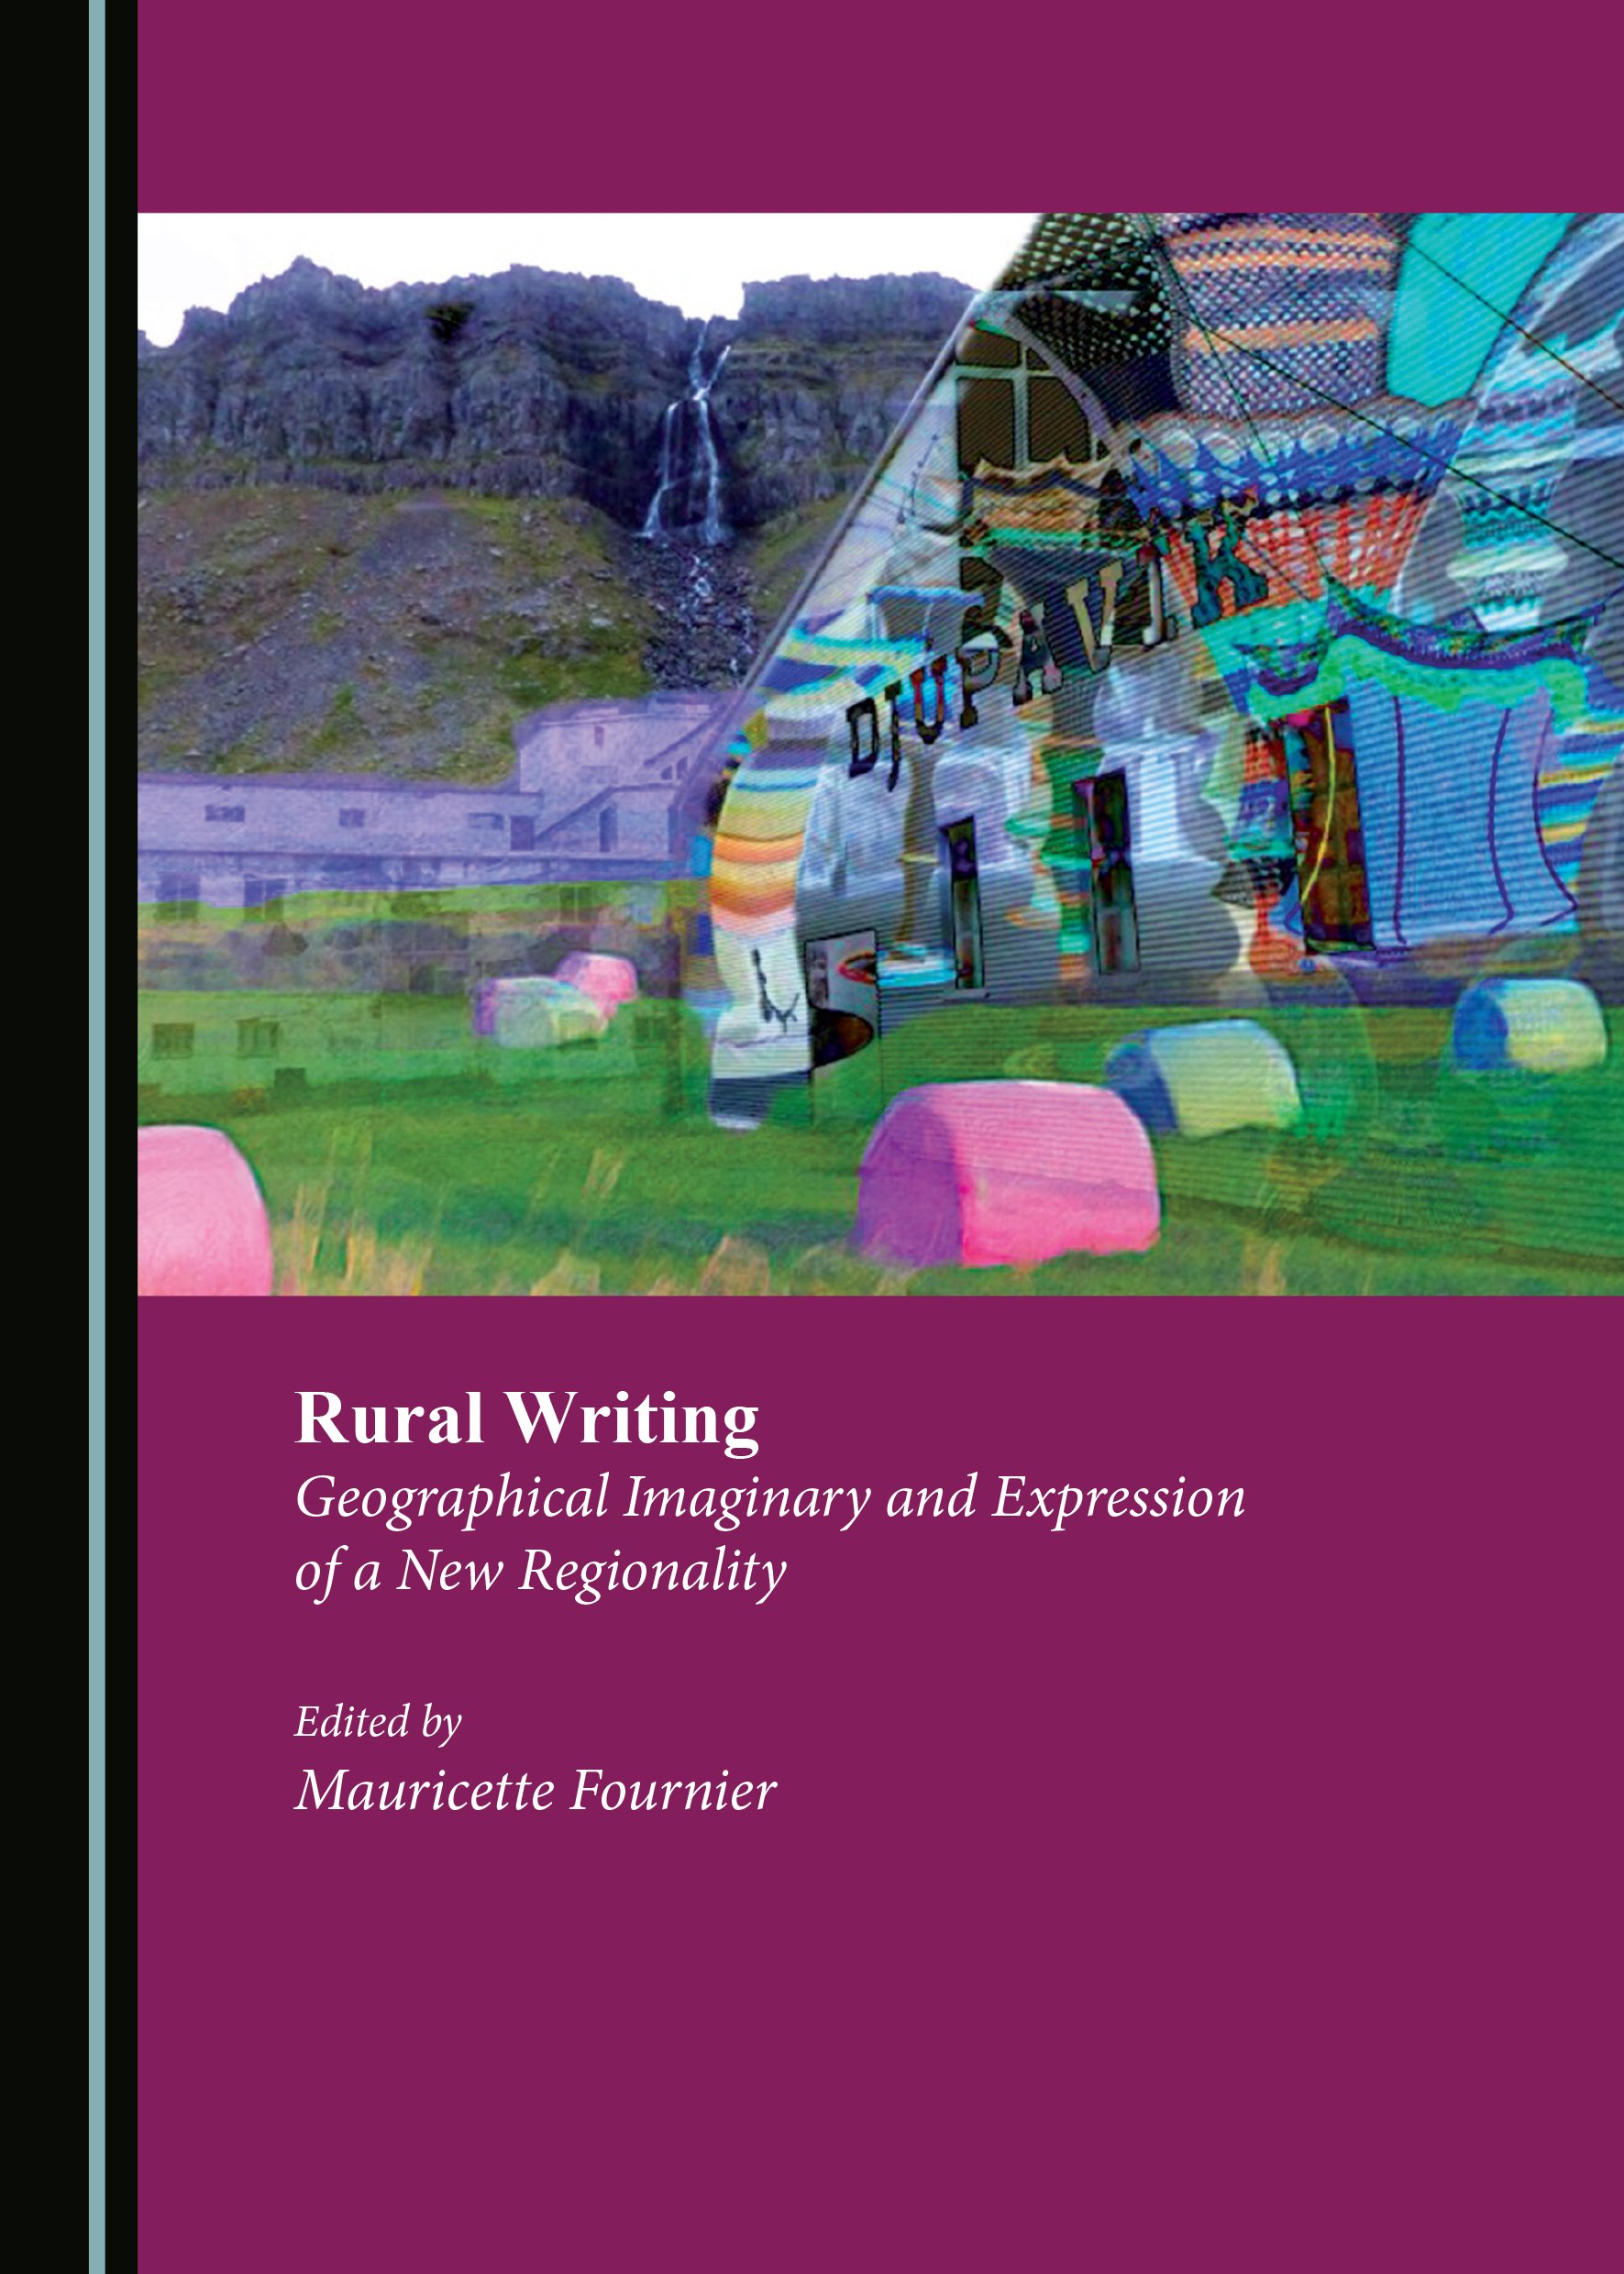 Rural Writing: Geographical Imaginary and Expression of a New Regionality